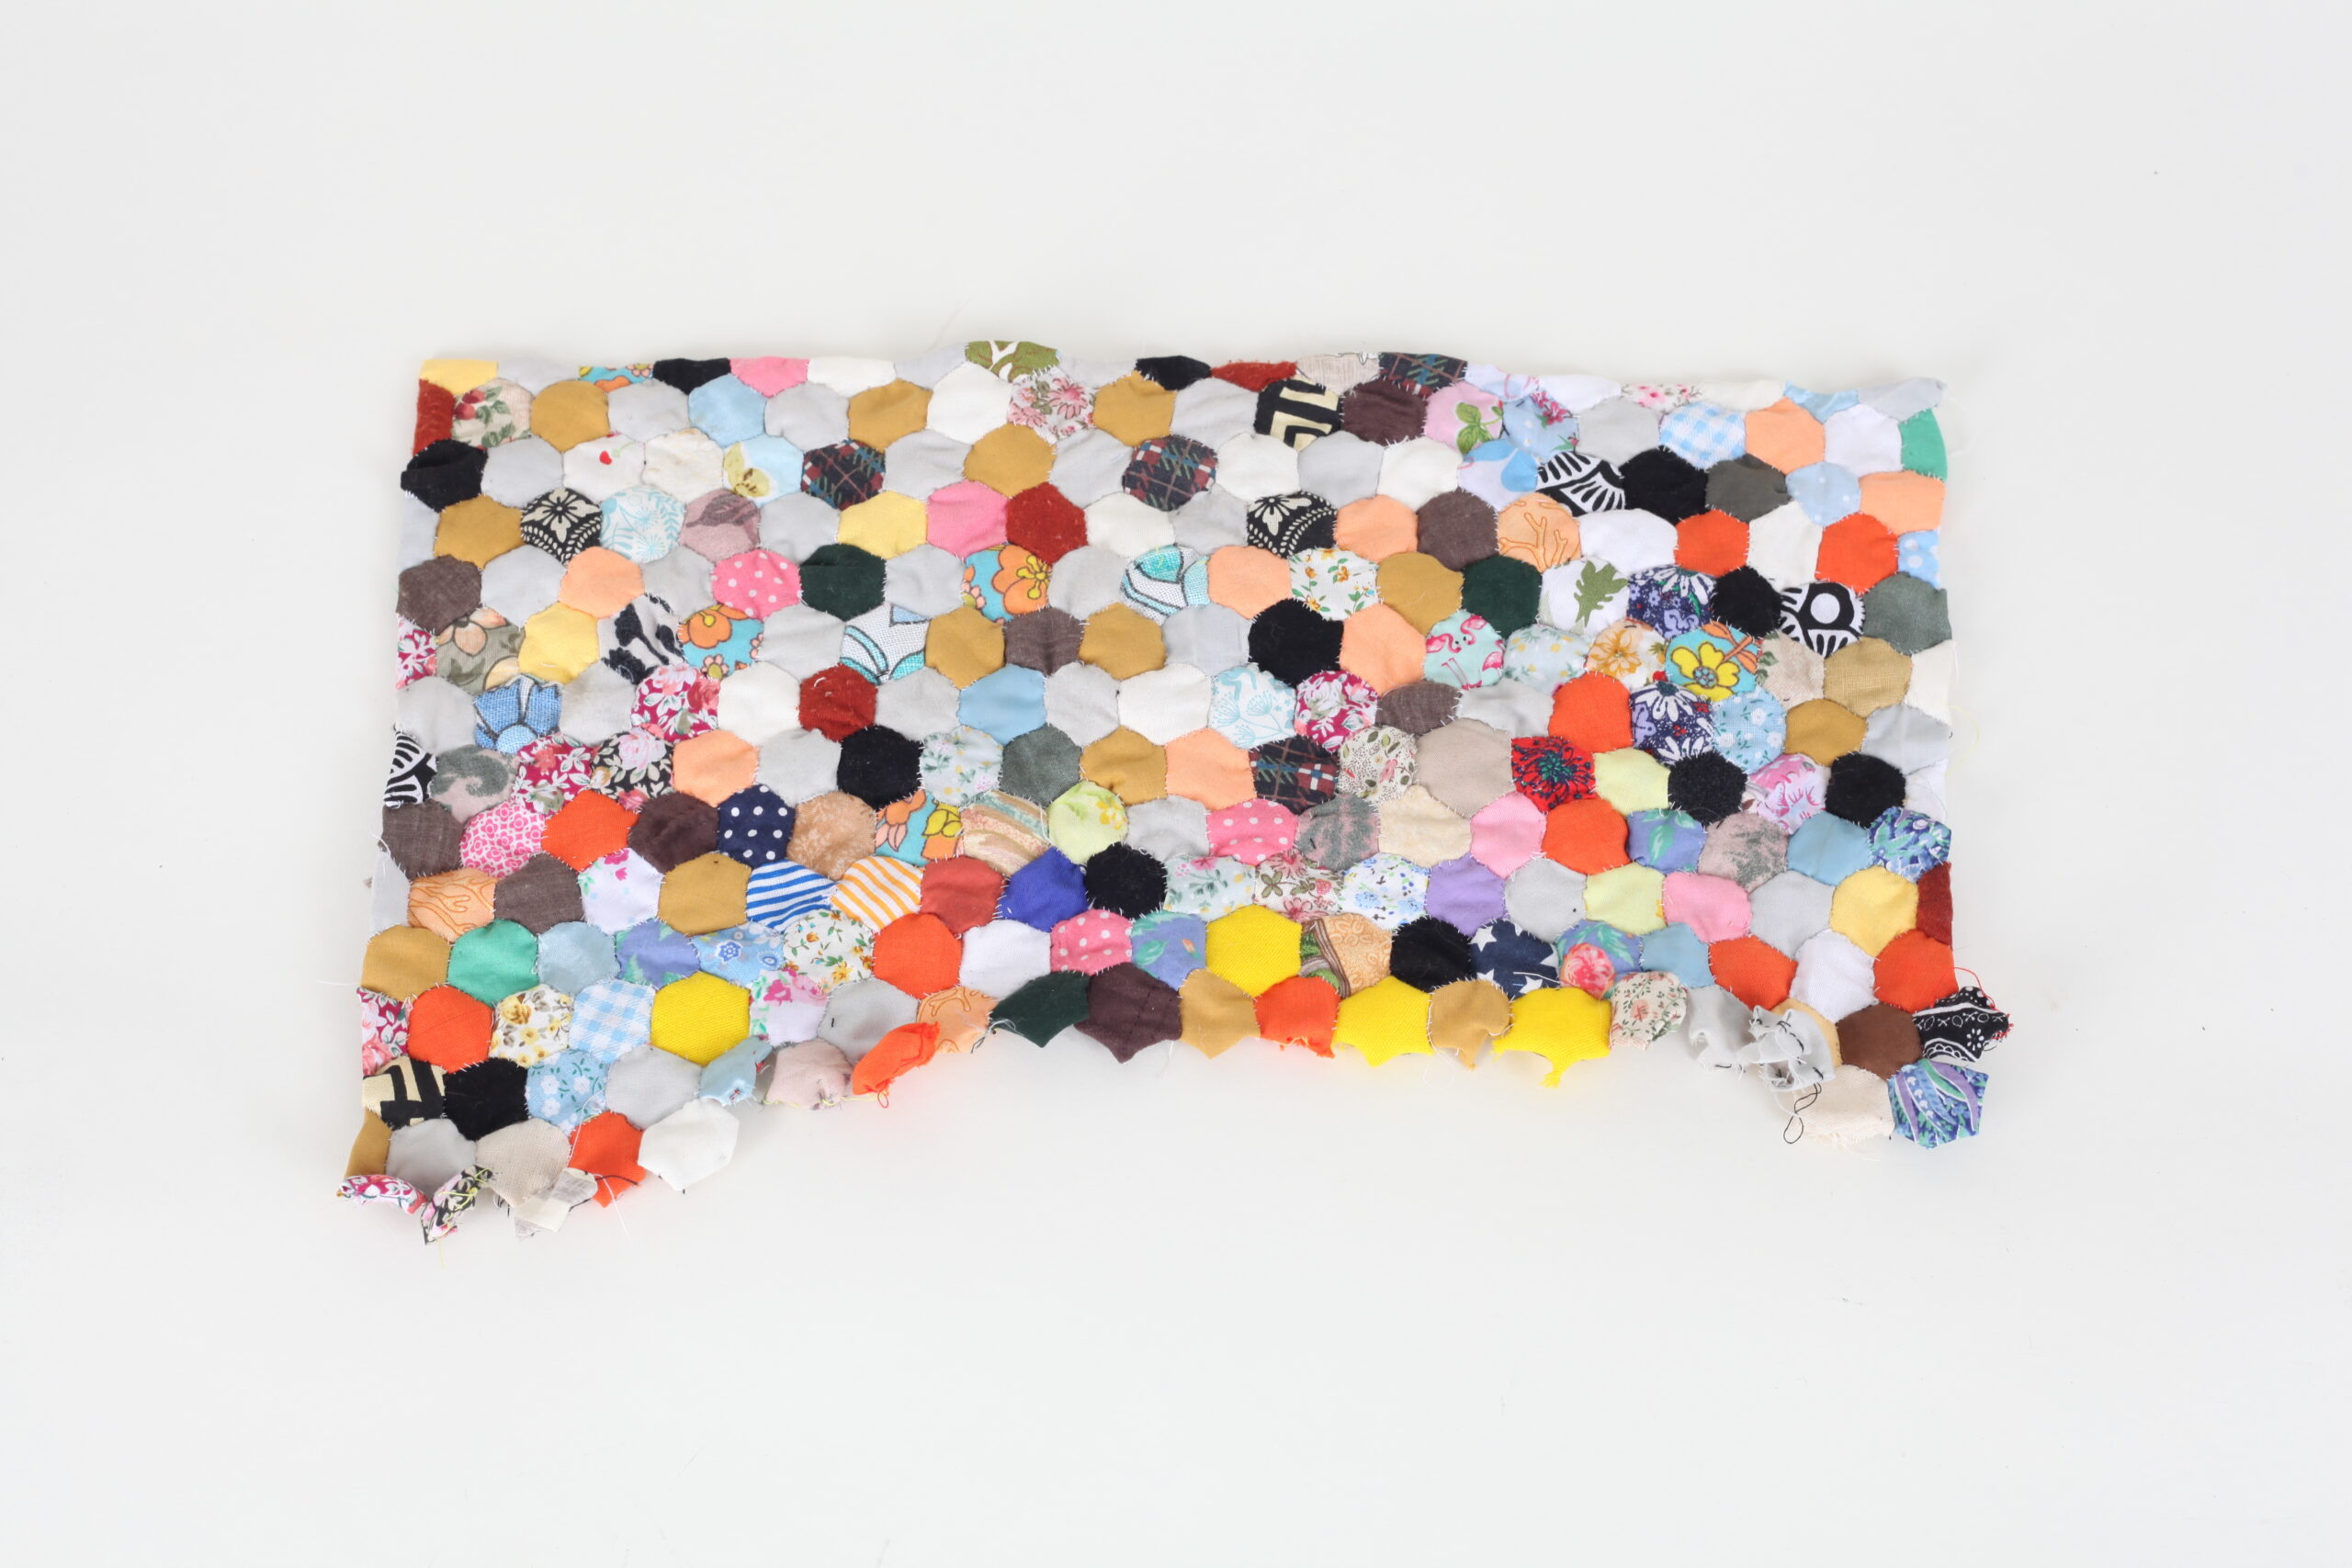 Patch work embroidery made from hundreds of colourful pieces of material.